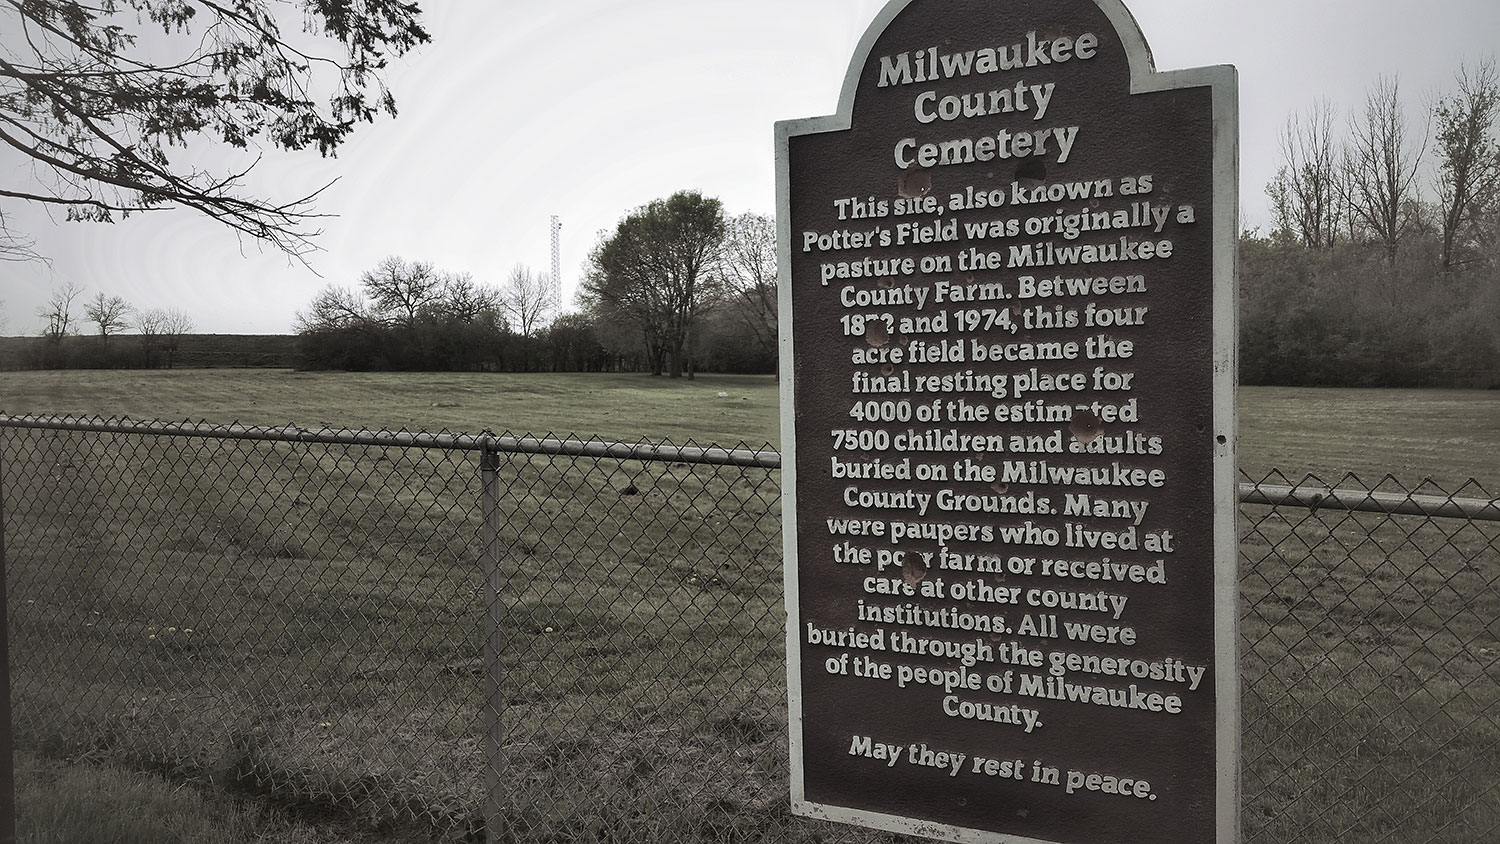 Milwaukee County Cemetery